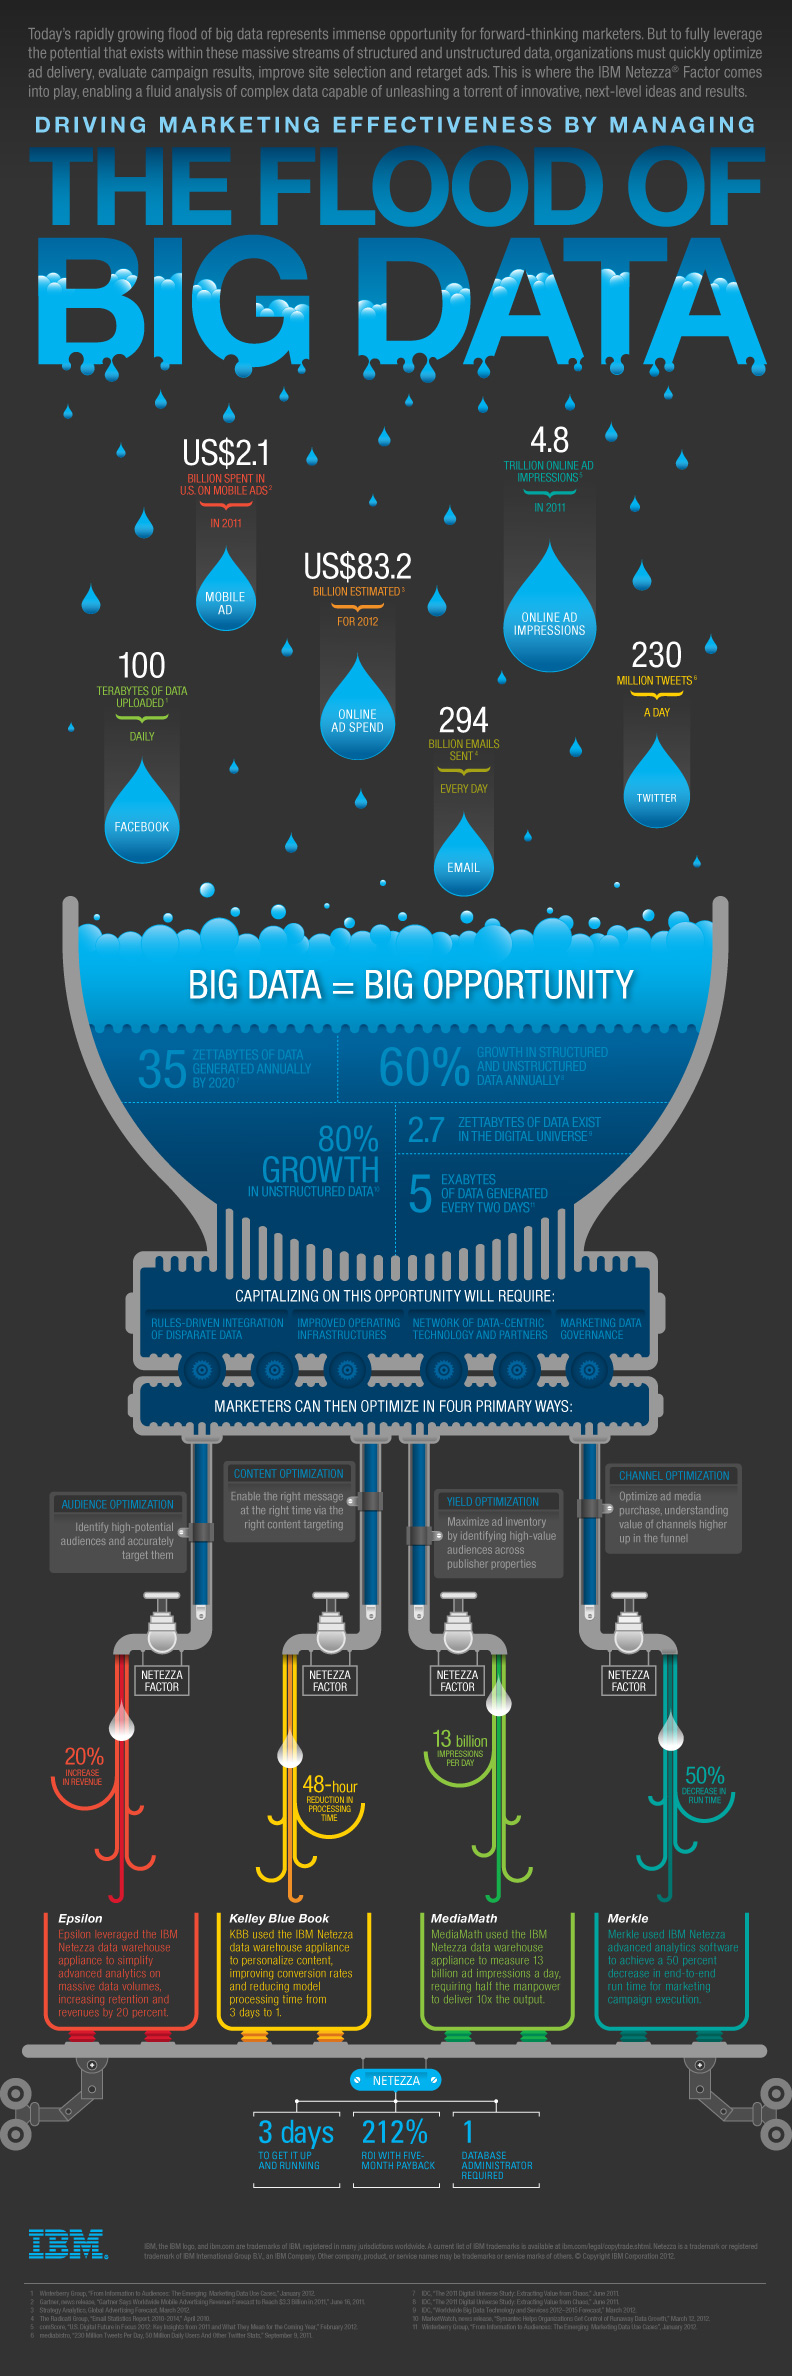 Big data drives marketing efforts